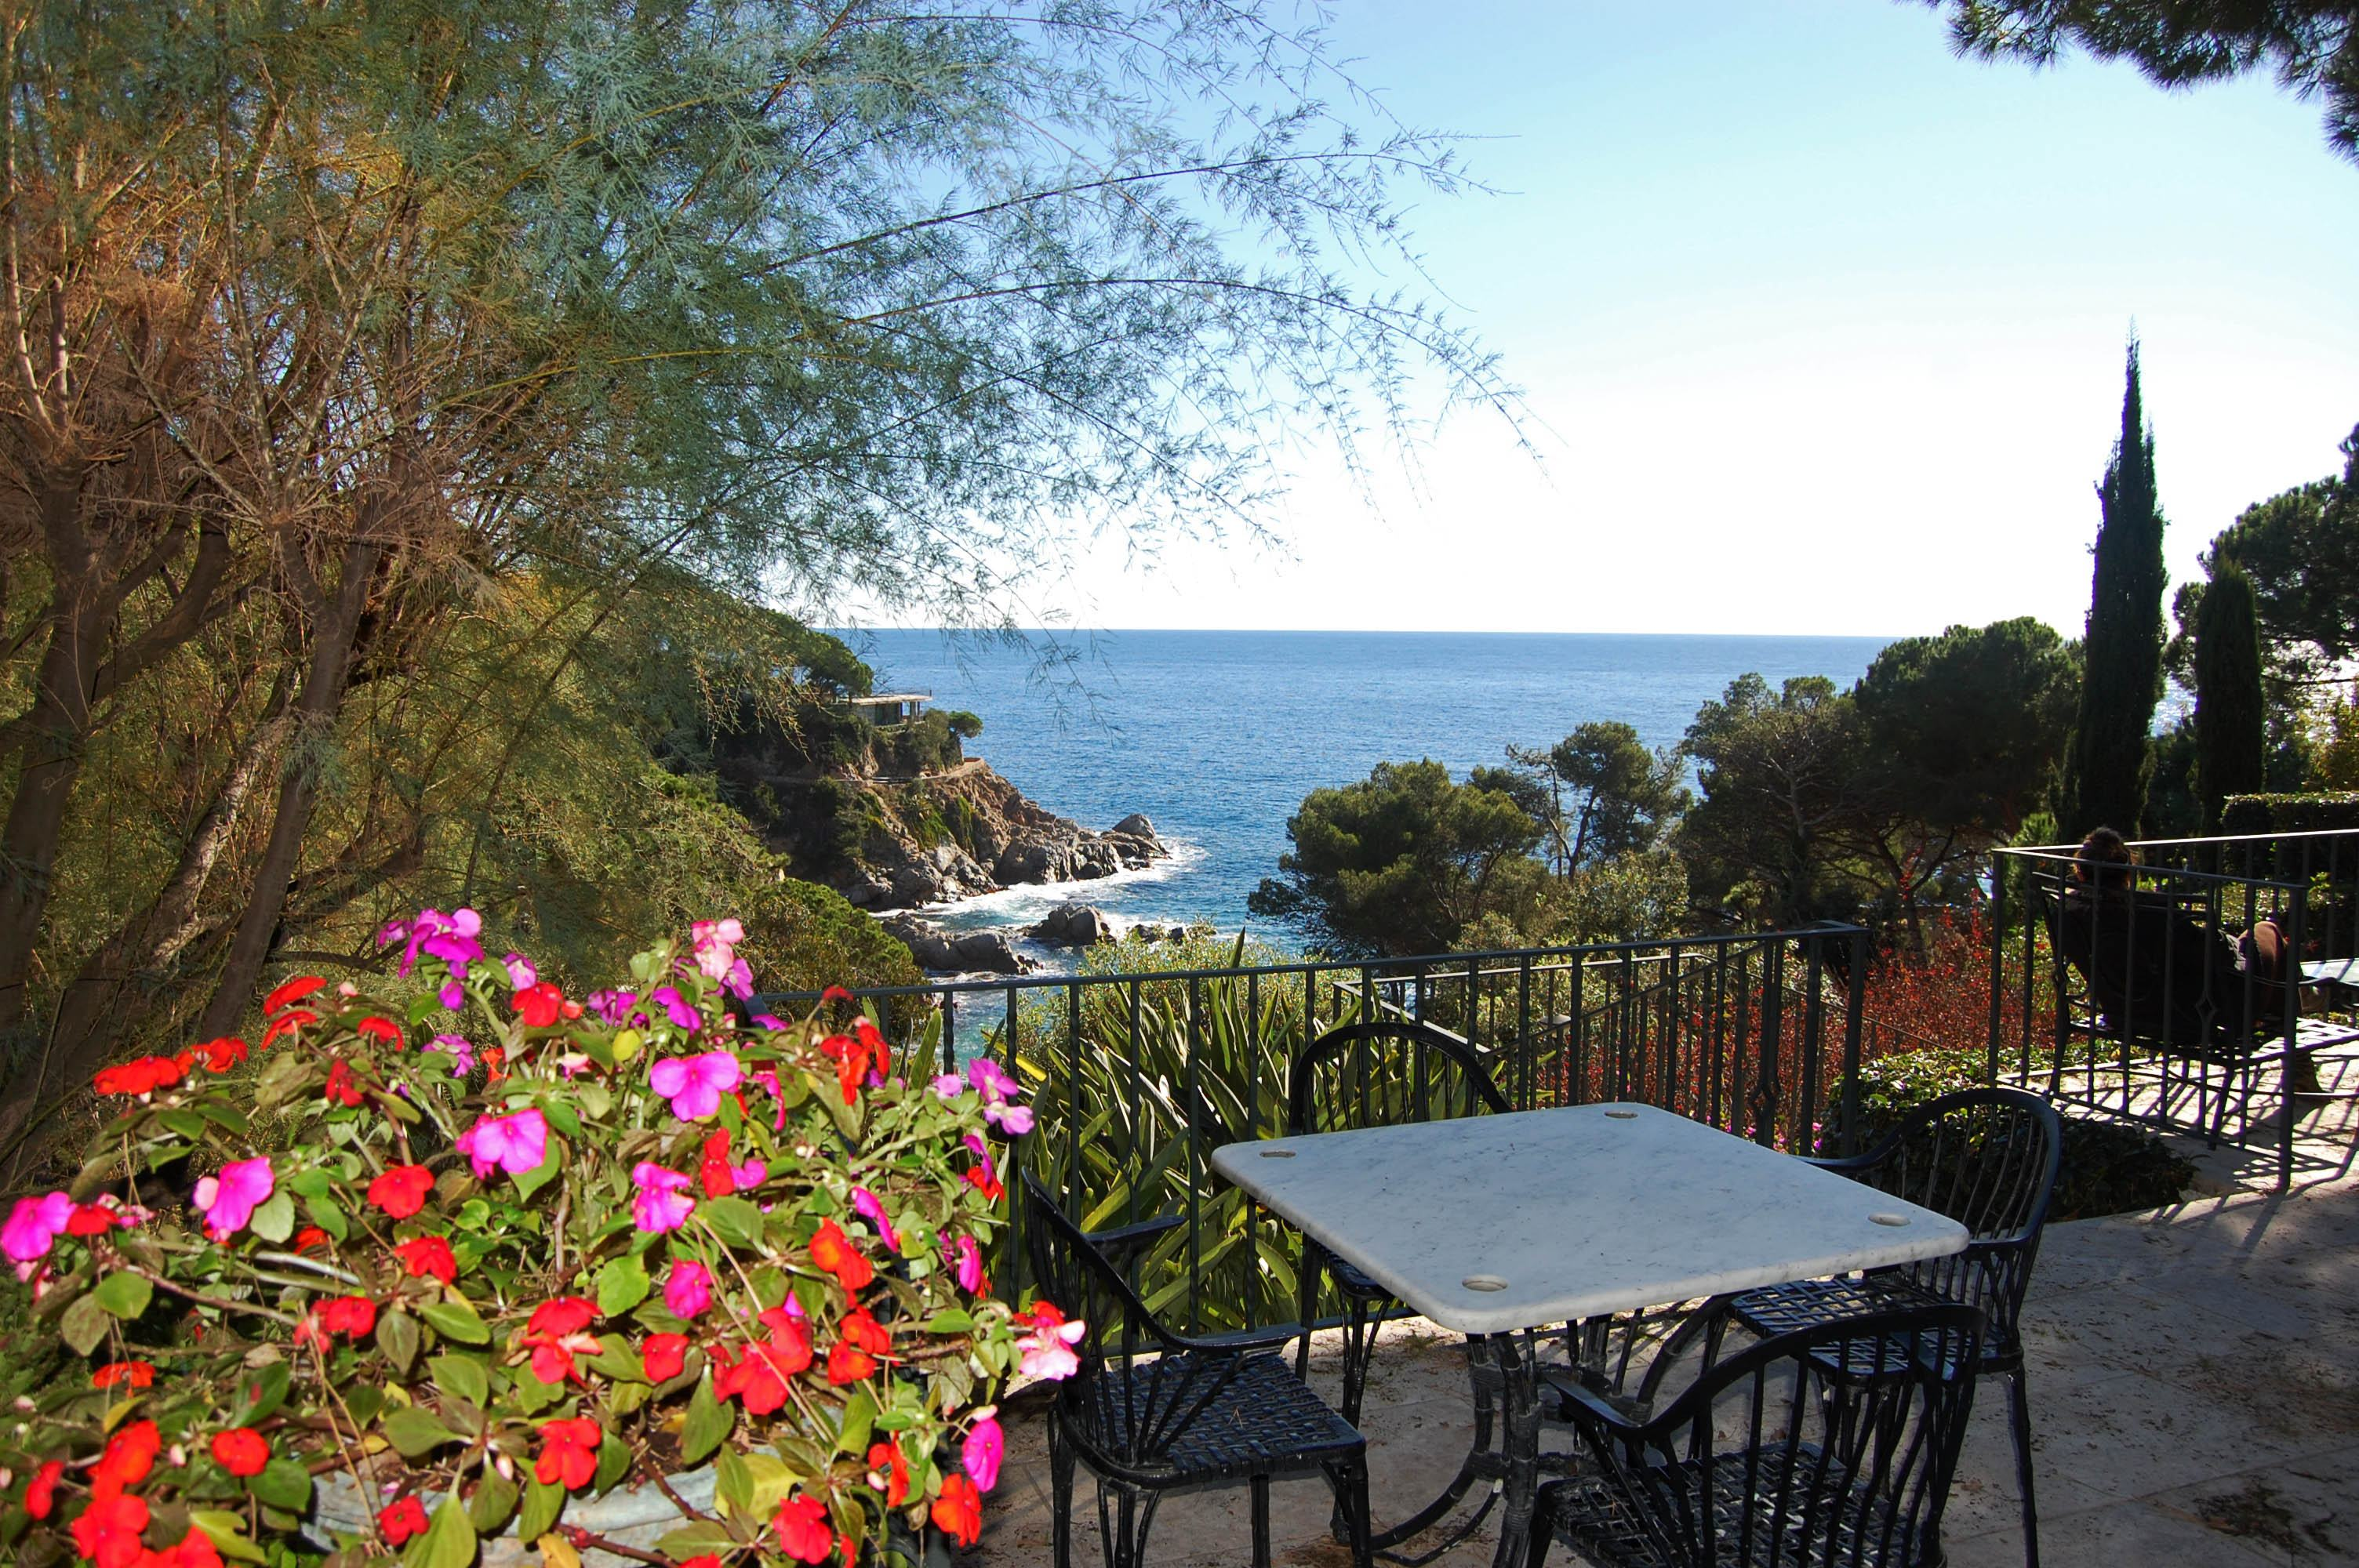 Casa Unifamiliar por un Venta en Magnificent mansion in unique location Lloret De Mar, Costa Brava 17310 España